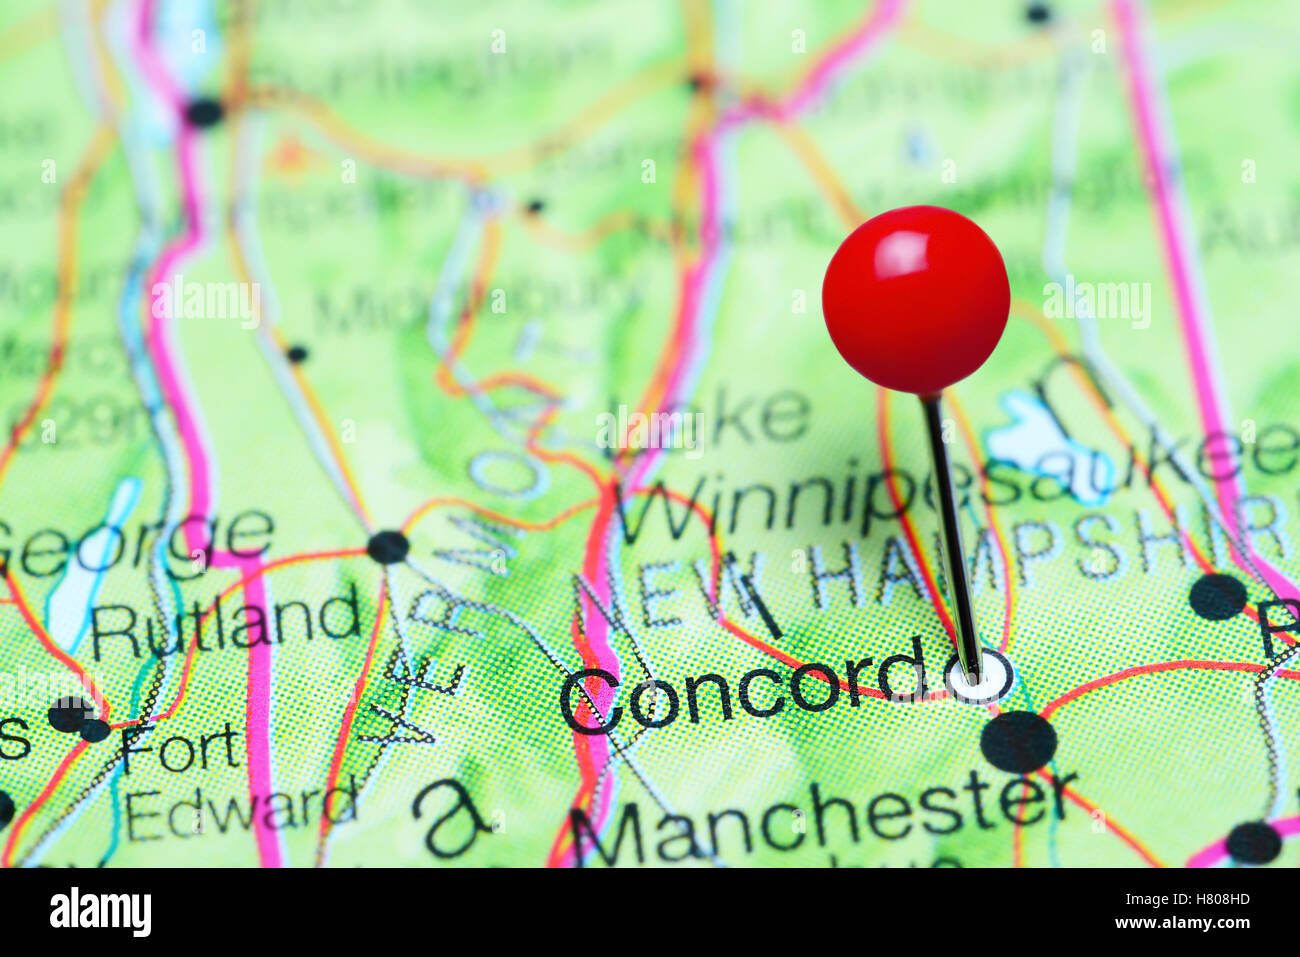 Concord Pinned On A Map Of New Hampshire USA Stock Photo Royalty - Concord usa map